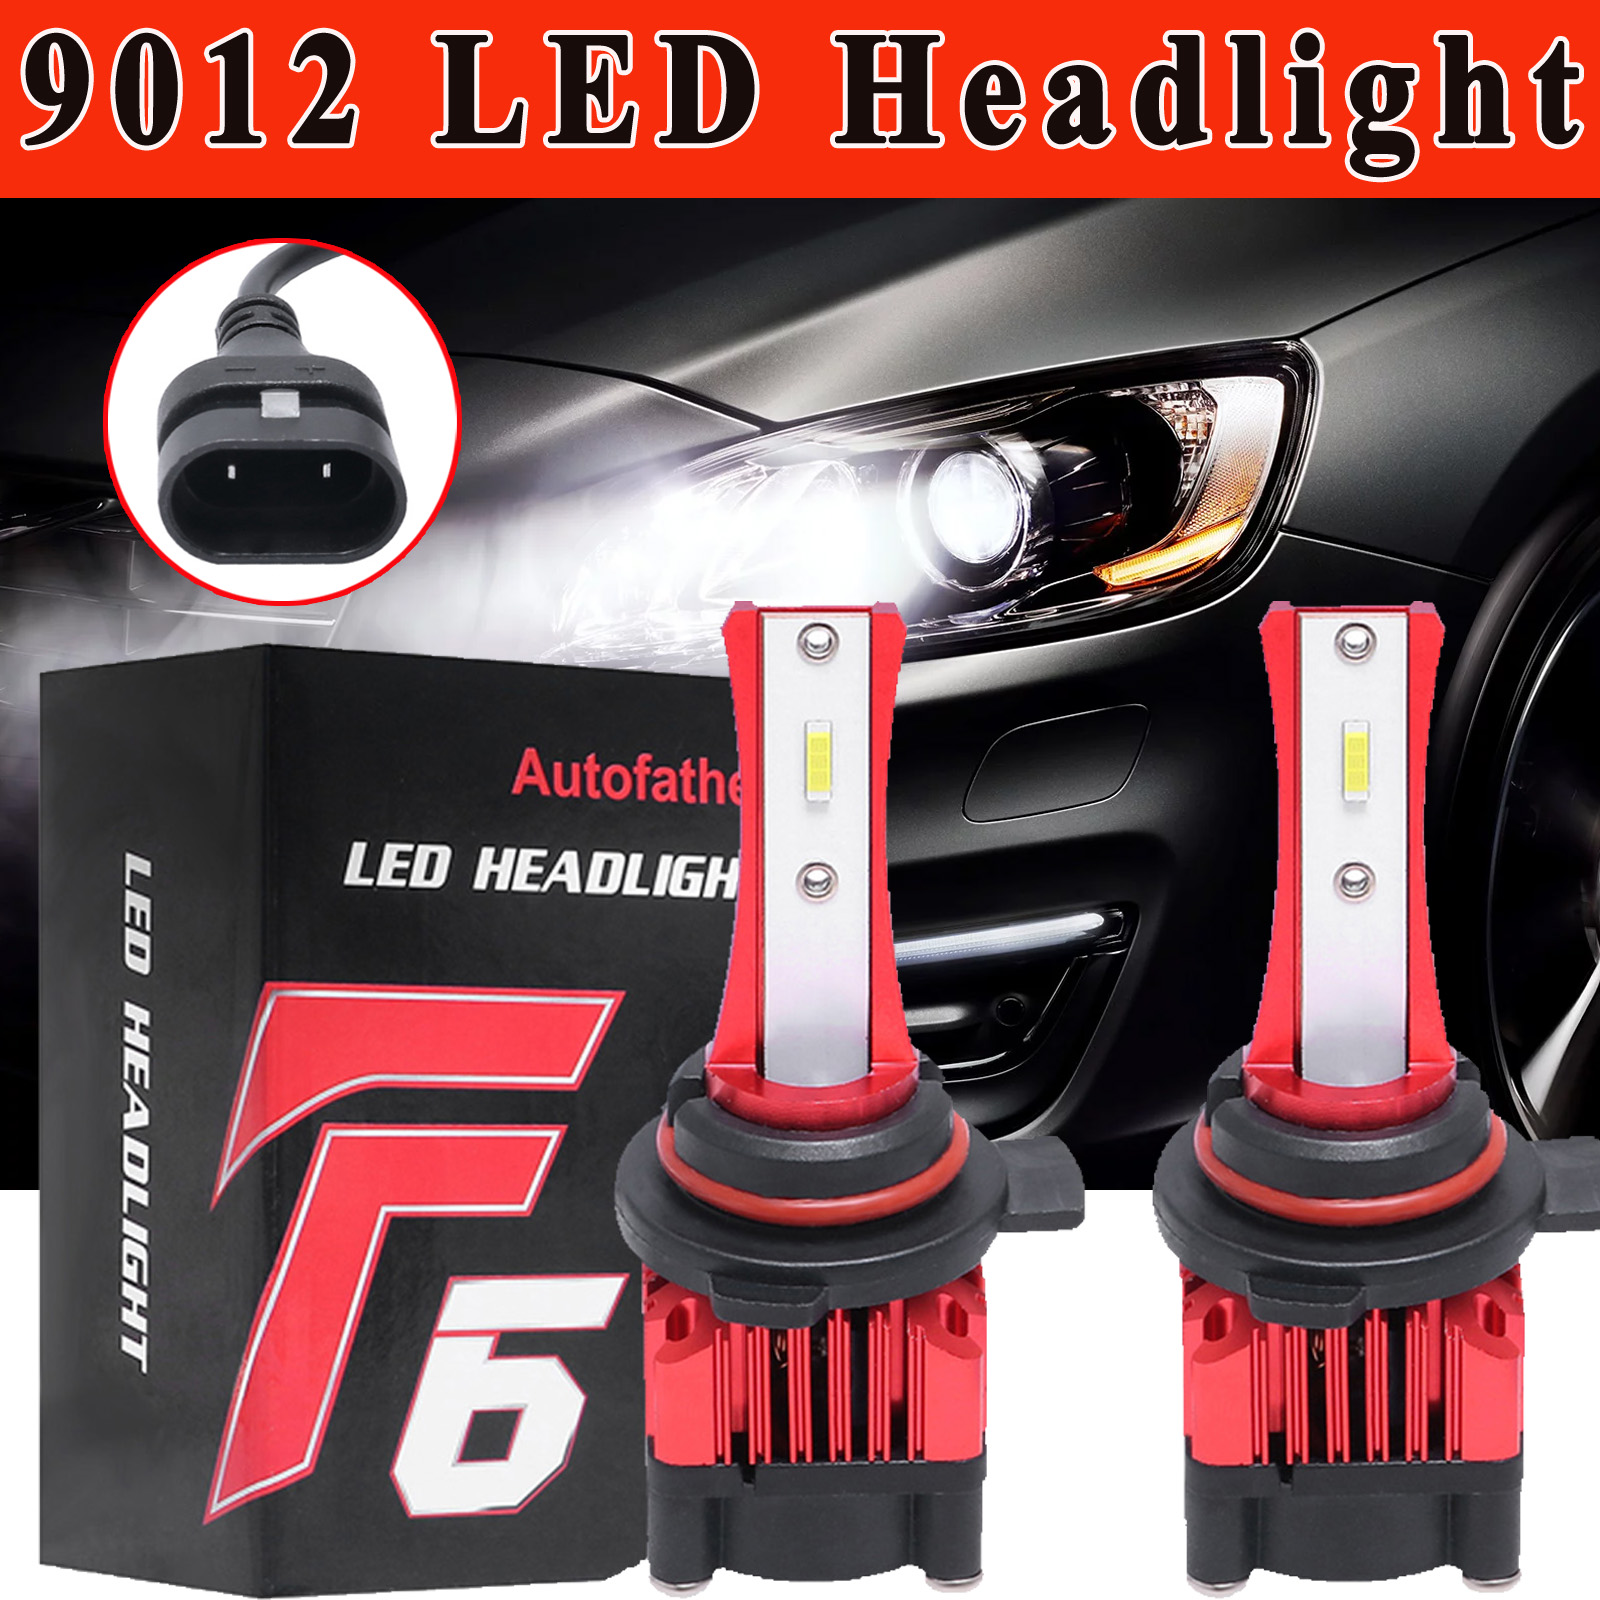 2 Yr Warranty H11 H8 H9 LED Headlight Bulbs 6000K Cool White High Beam//Low Beam//Fog Light 12000lm 4 Side COB Chips Super Bright 360 Degree Auto Headlamp All-in-One Conversion Kit Plug /& Play